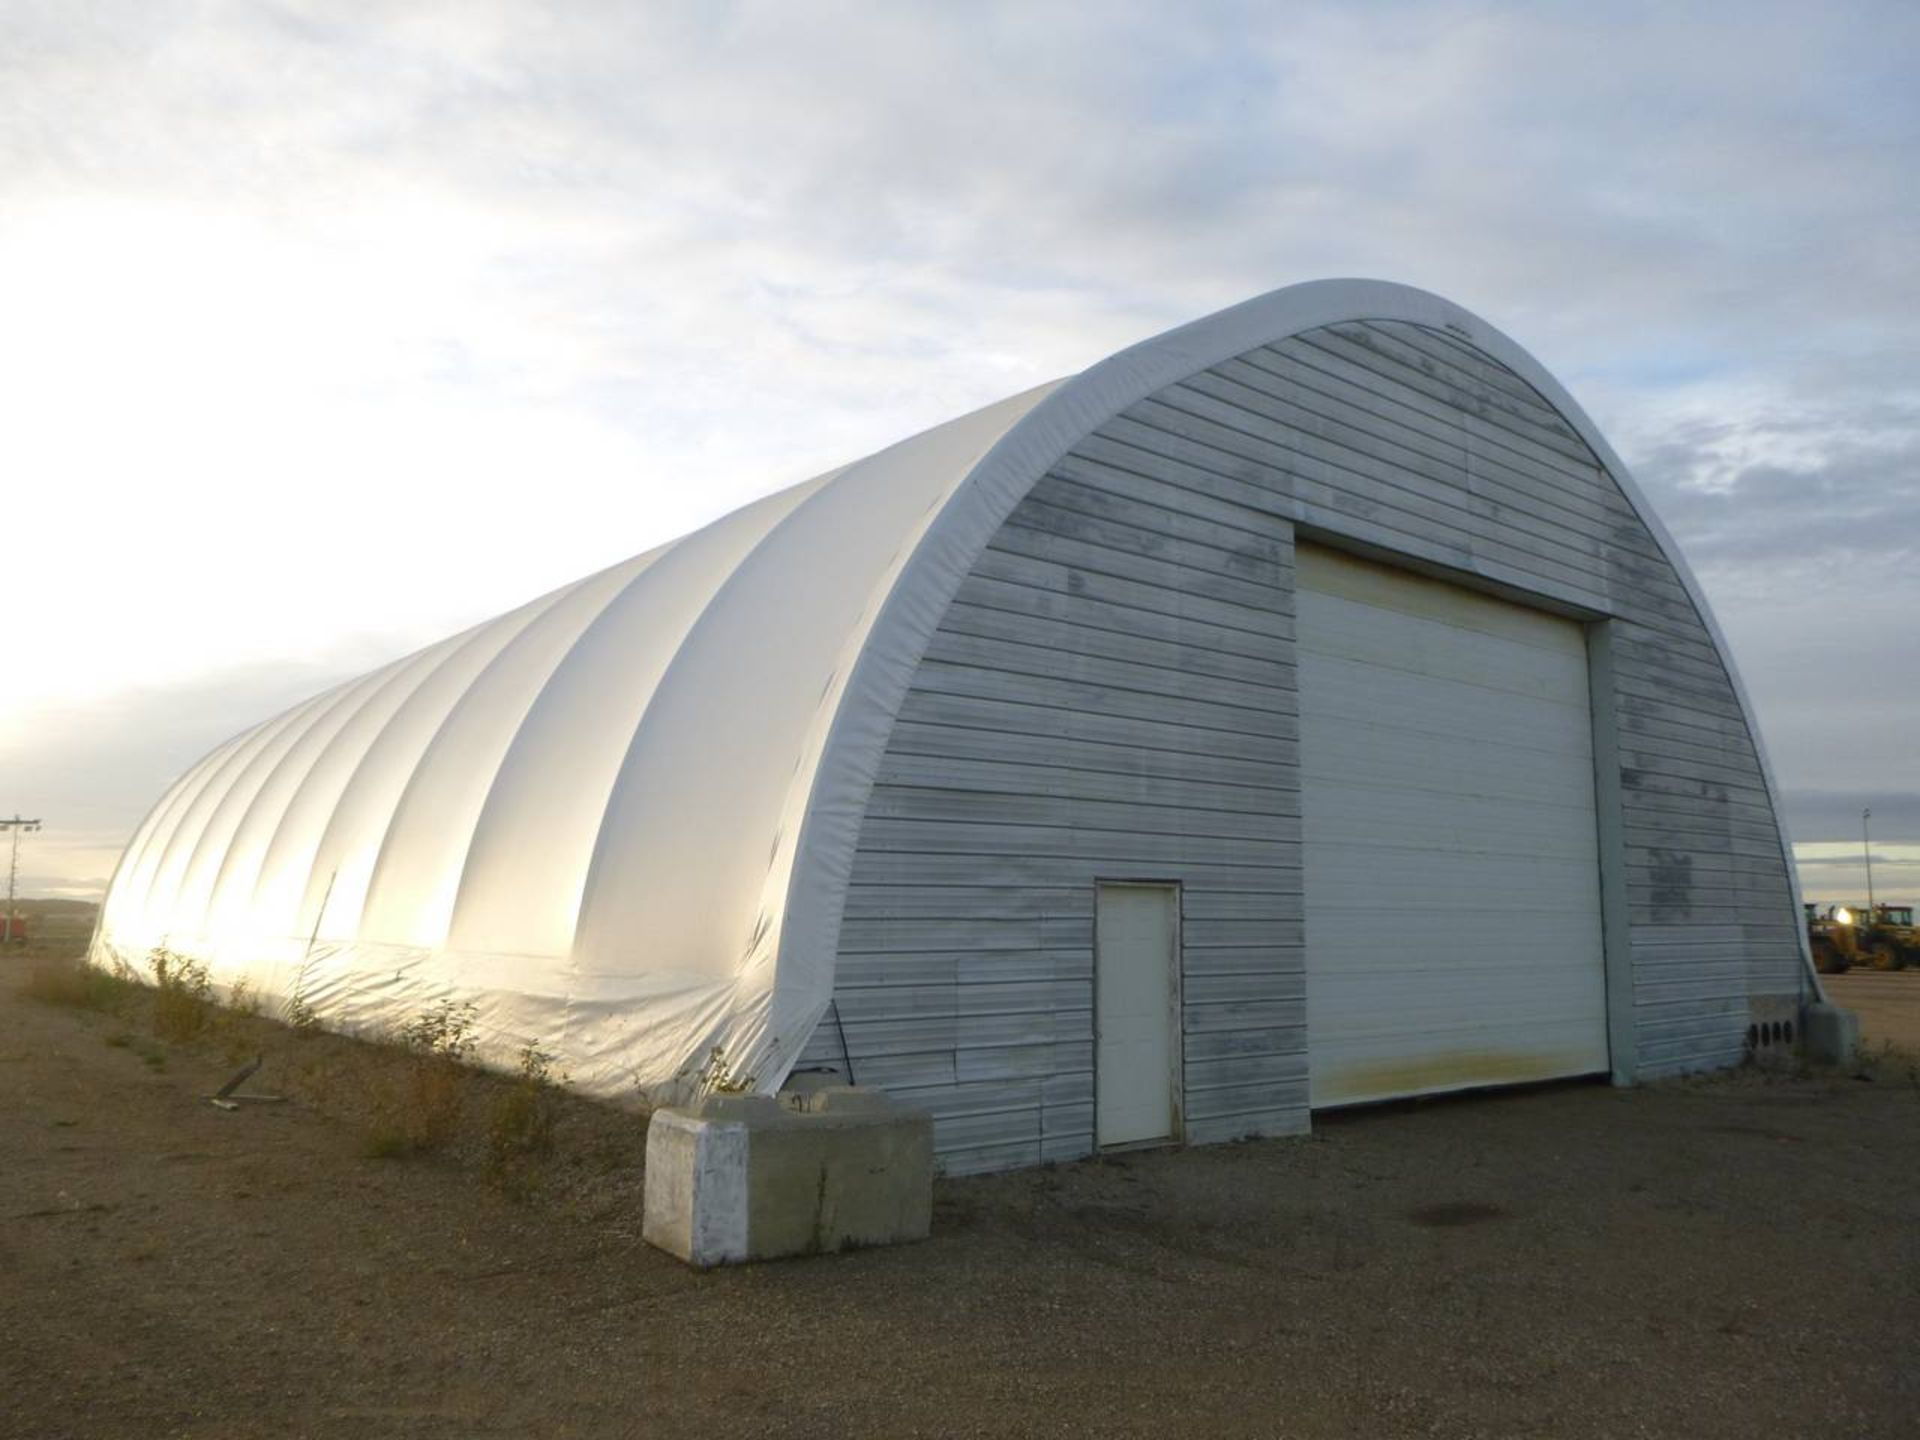 Allweather Shelters Portable Storage Building, - Image 3 of 5